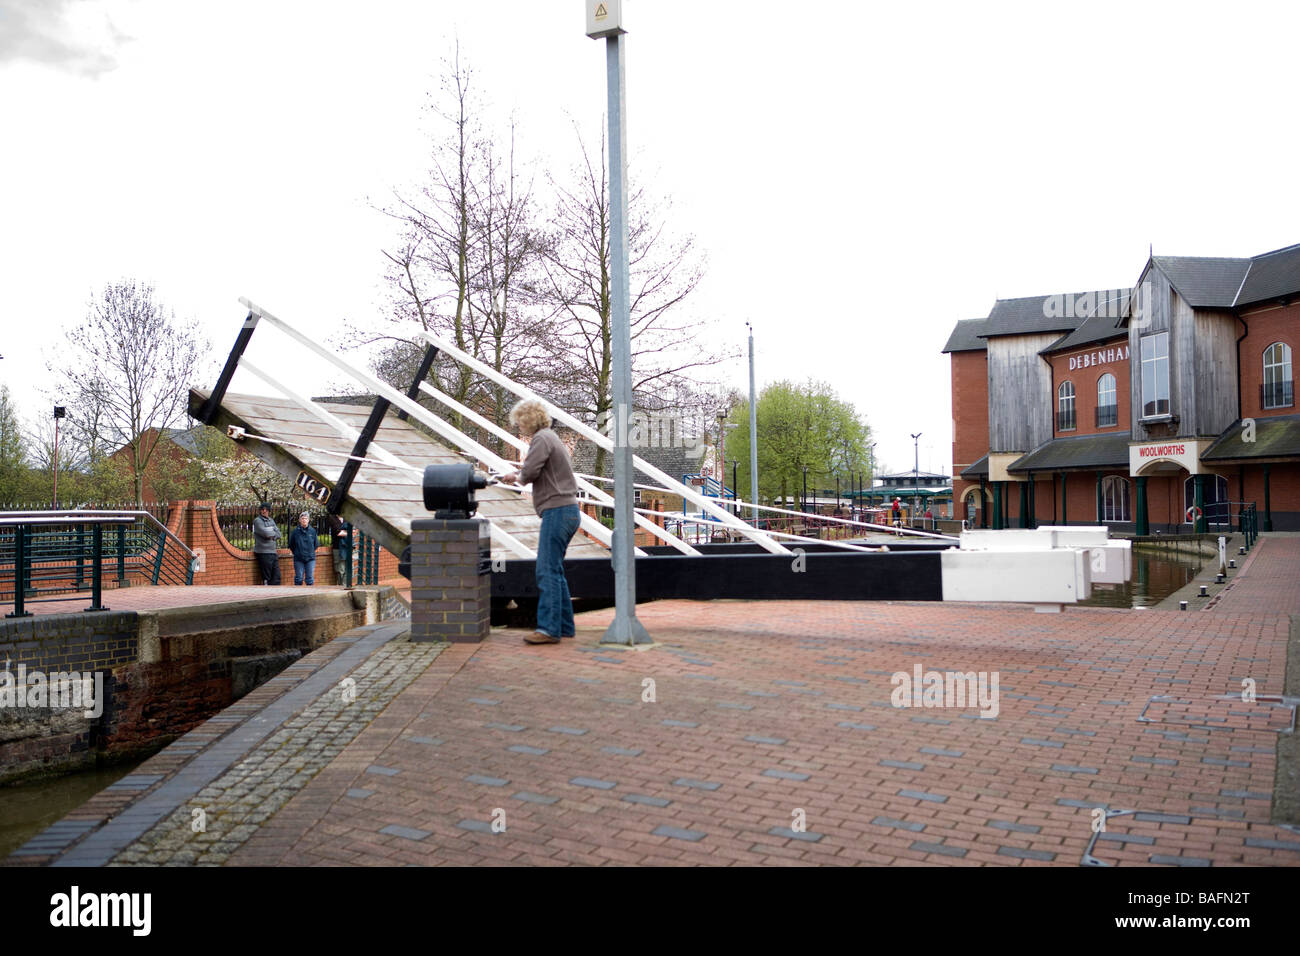 A lift bridge being wound up manually with a windlass on the Oxford canal in the town of Banbury - Stock Image